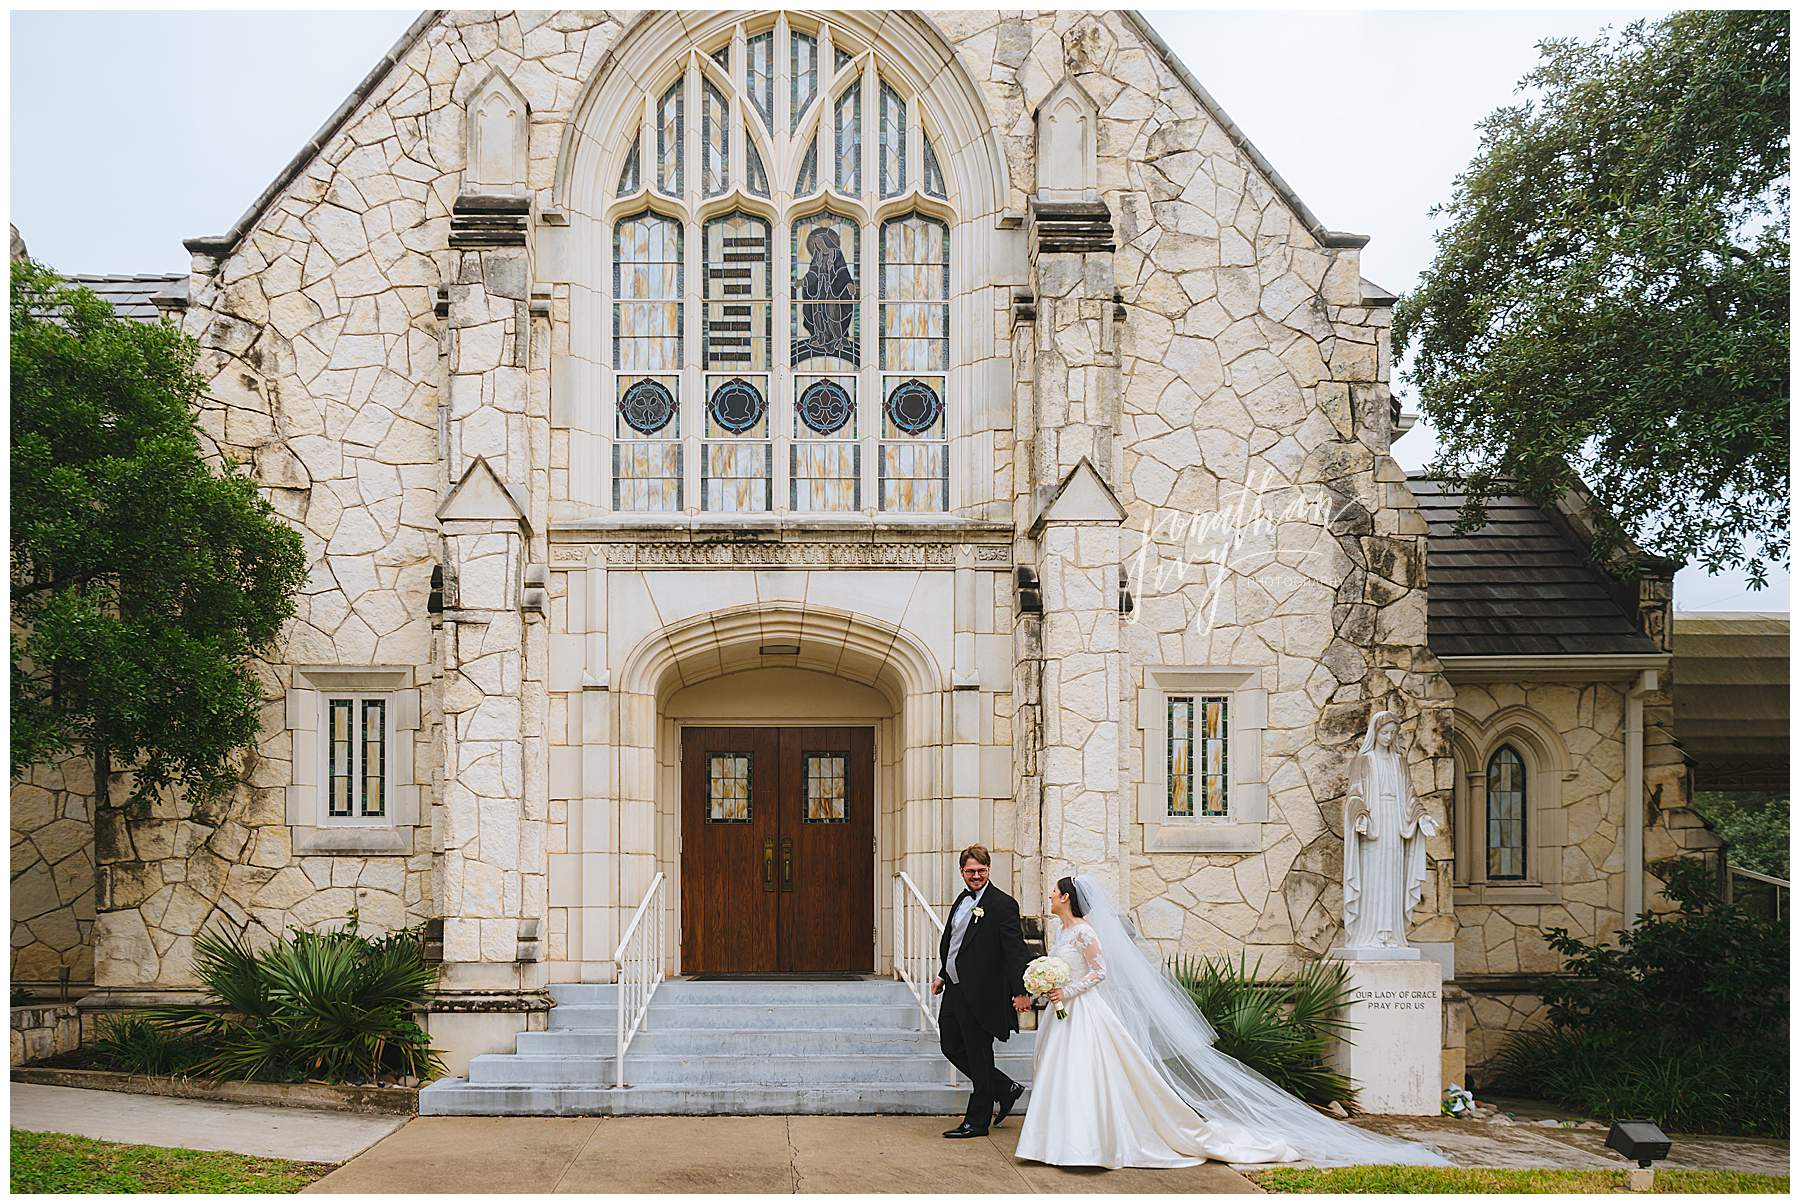 Menger Hotel Wedding – Amanda & William